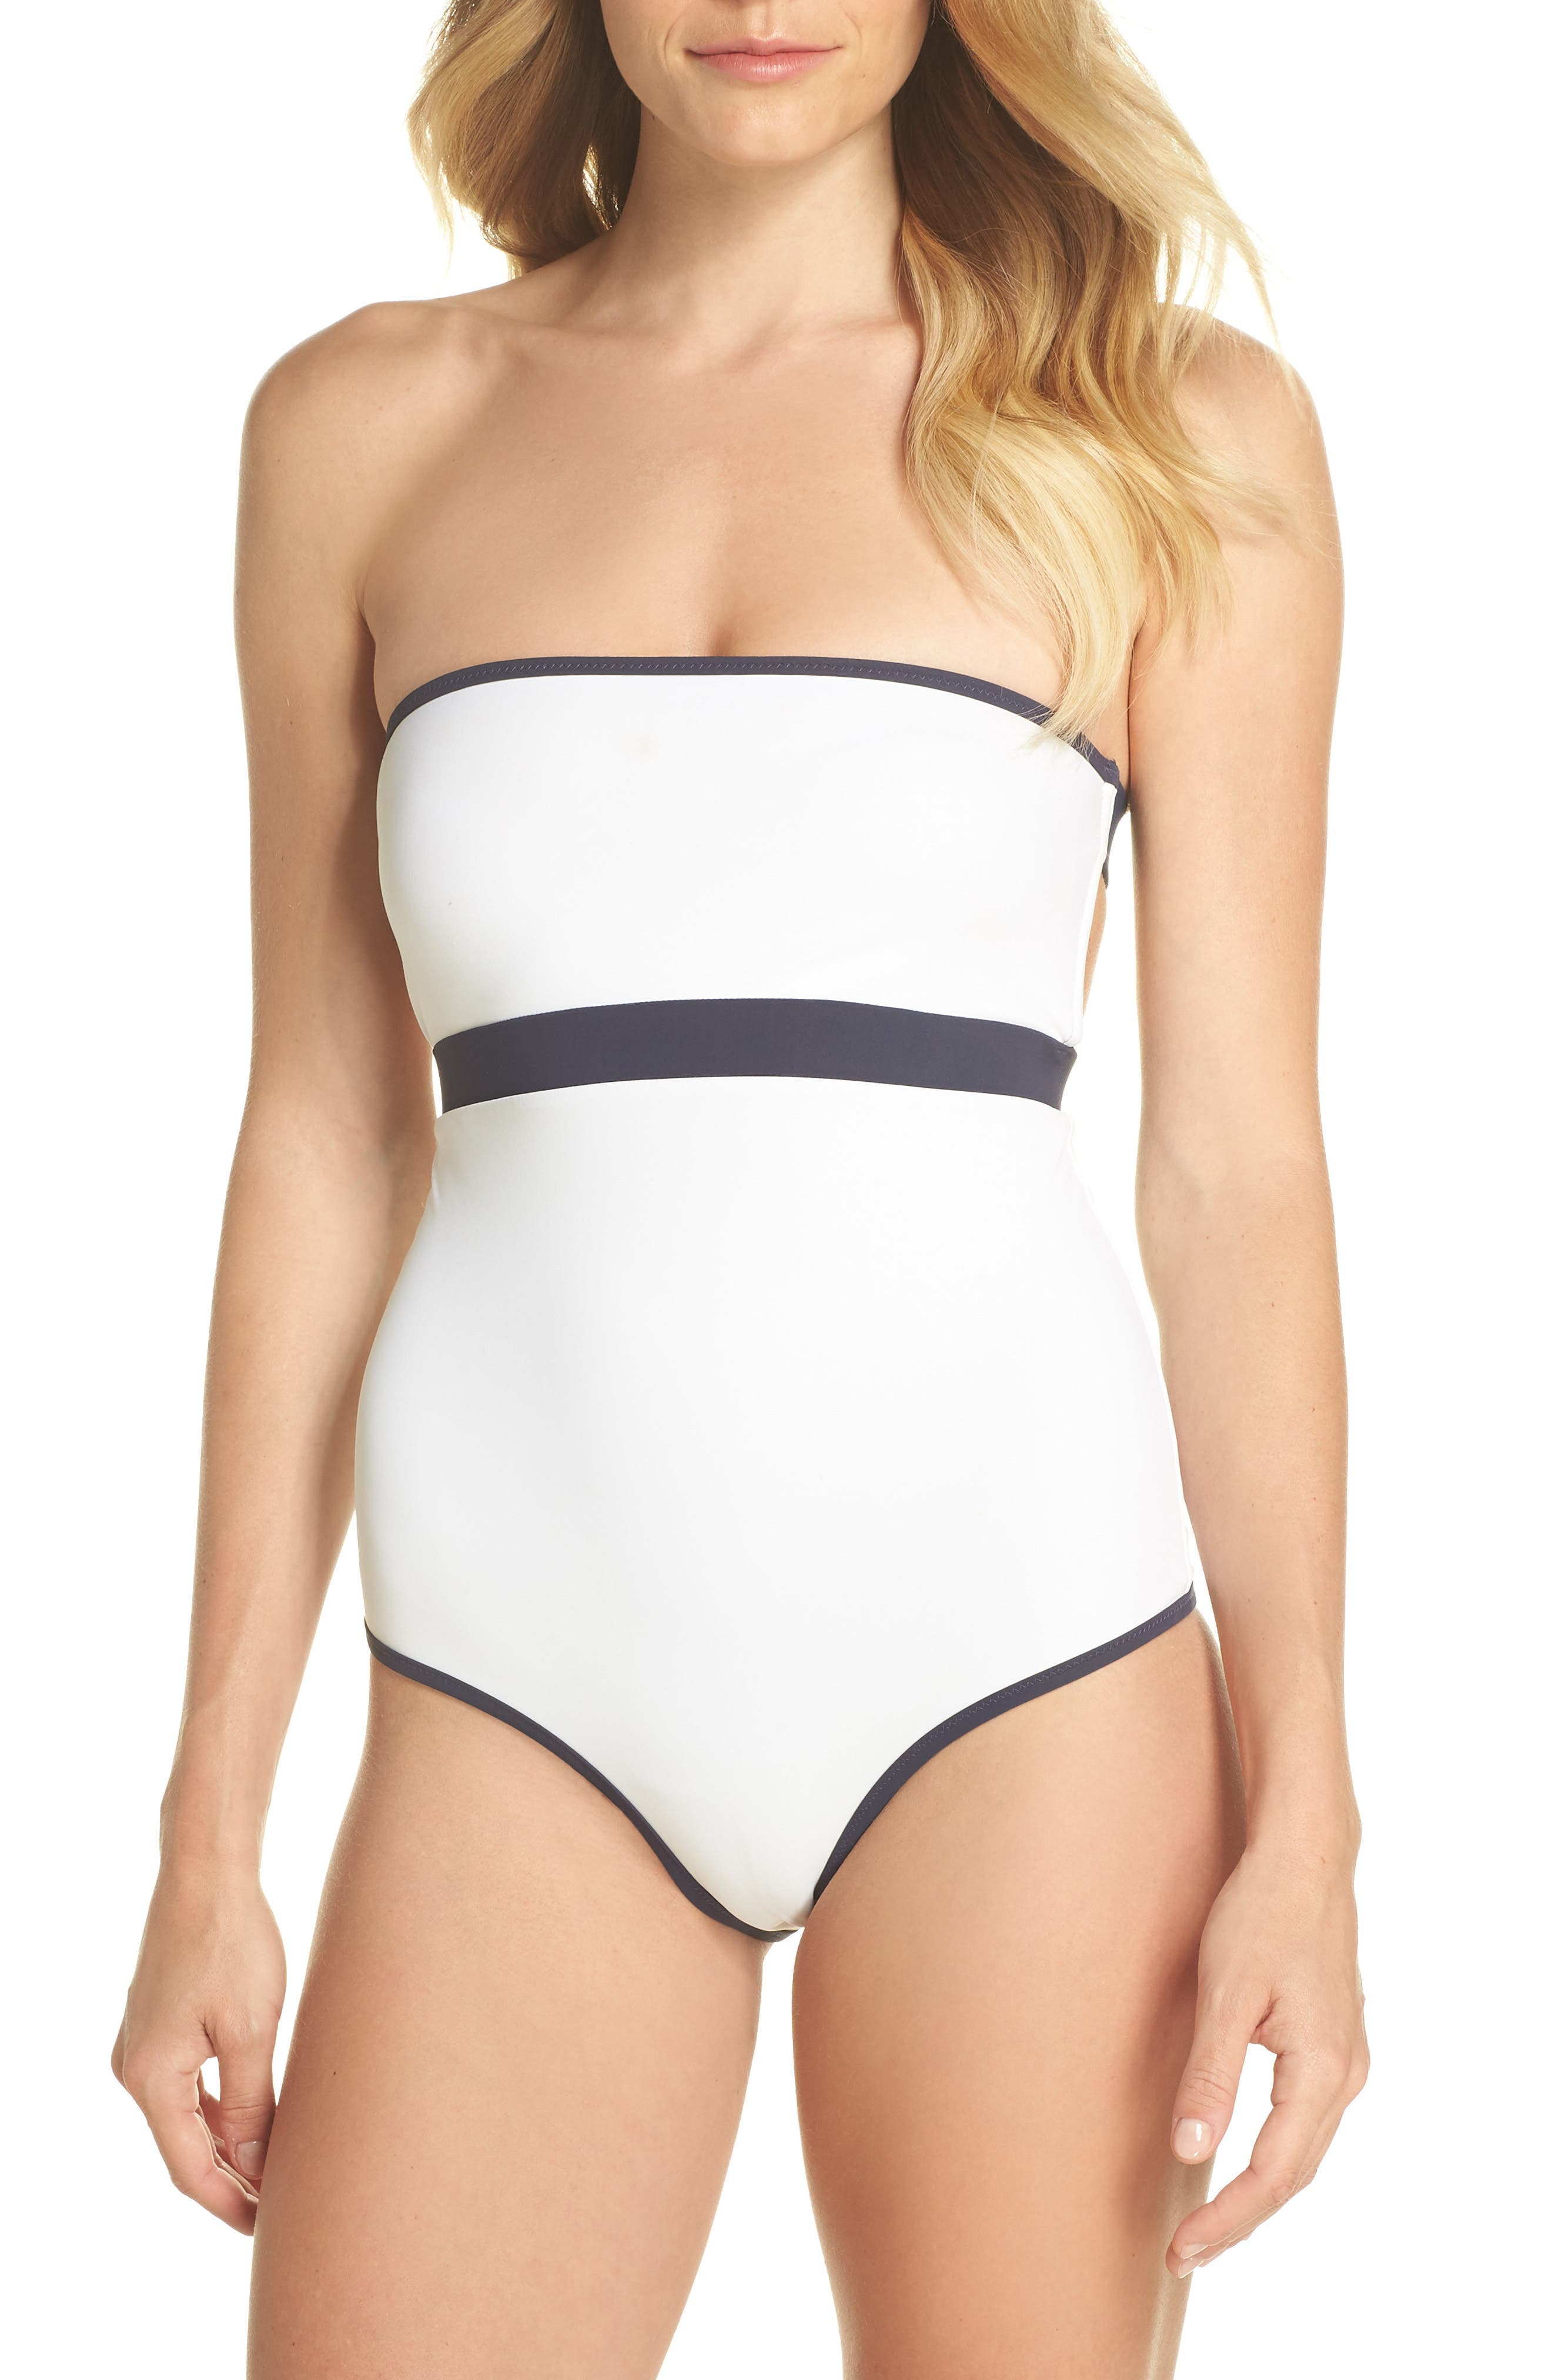 BB Reversible One-Piece Swimsuit,                             Alternate thumbnail 2, color,                             White/ Navy